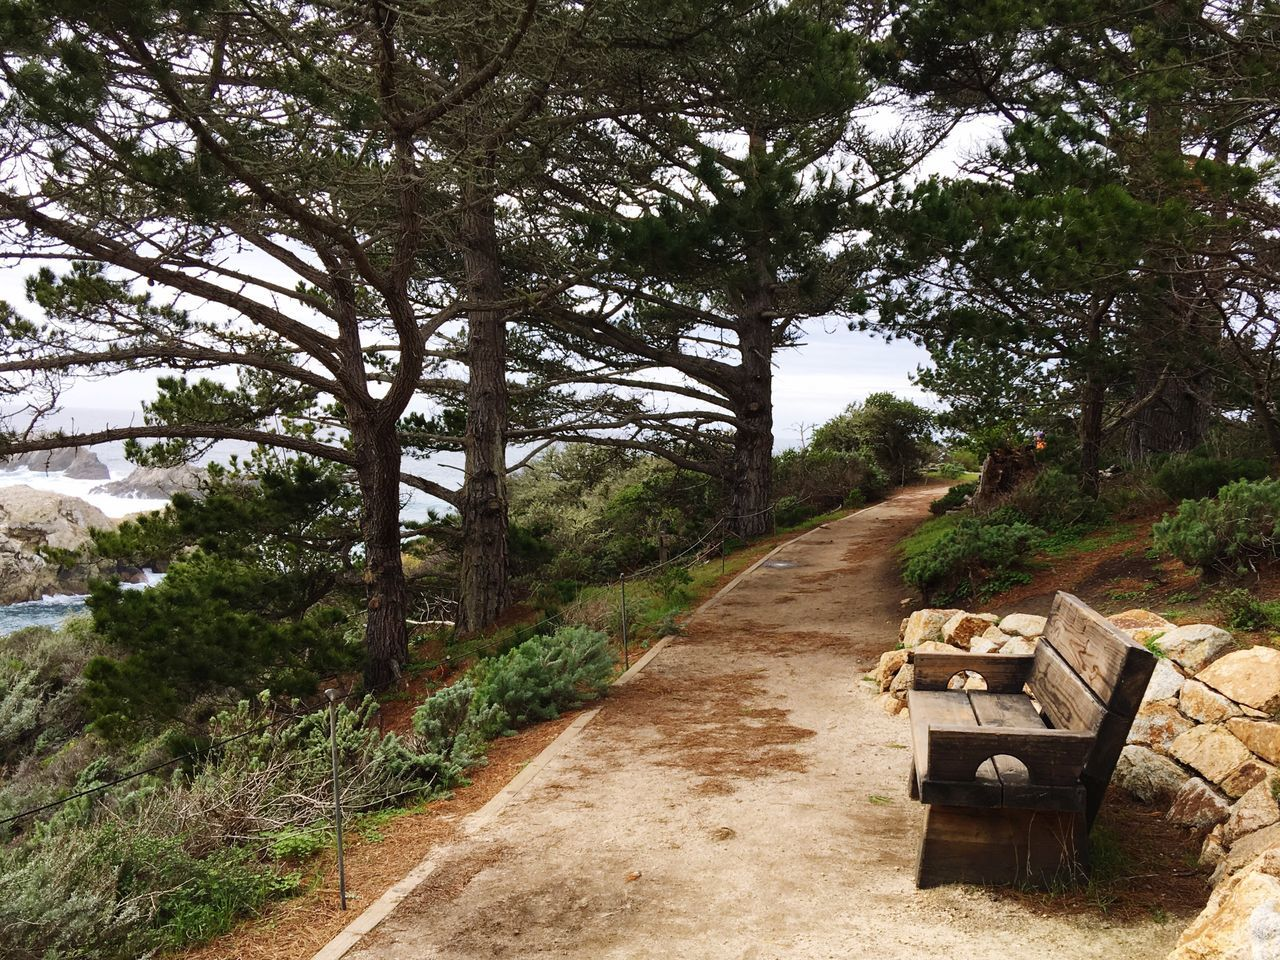 Bench Park Bench Trail Path Point Lobos Carmel-by-the-sea California United States California Coast California State Parks Pacific Pacific Ocean Ocean Cliff